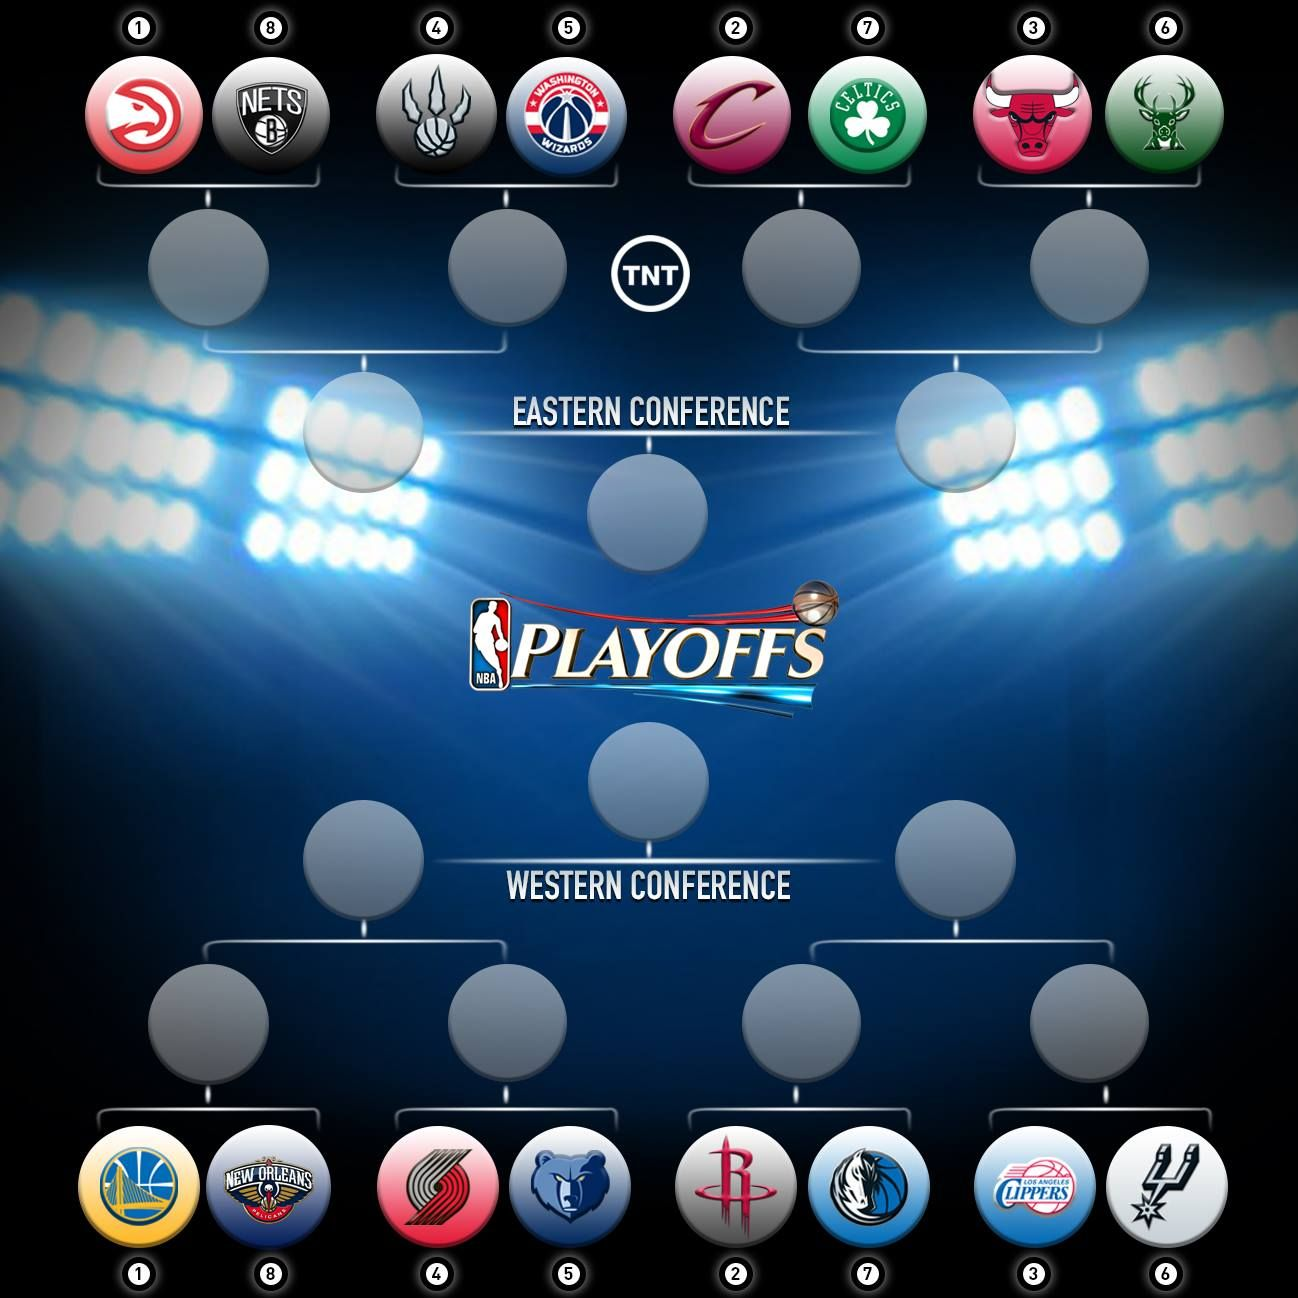 It's playoff time in the NBA meaning that basketball fans